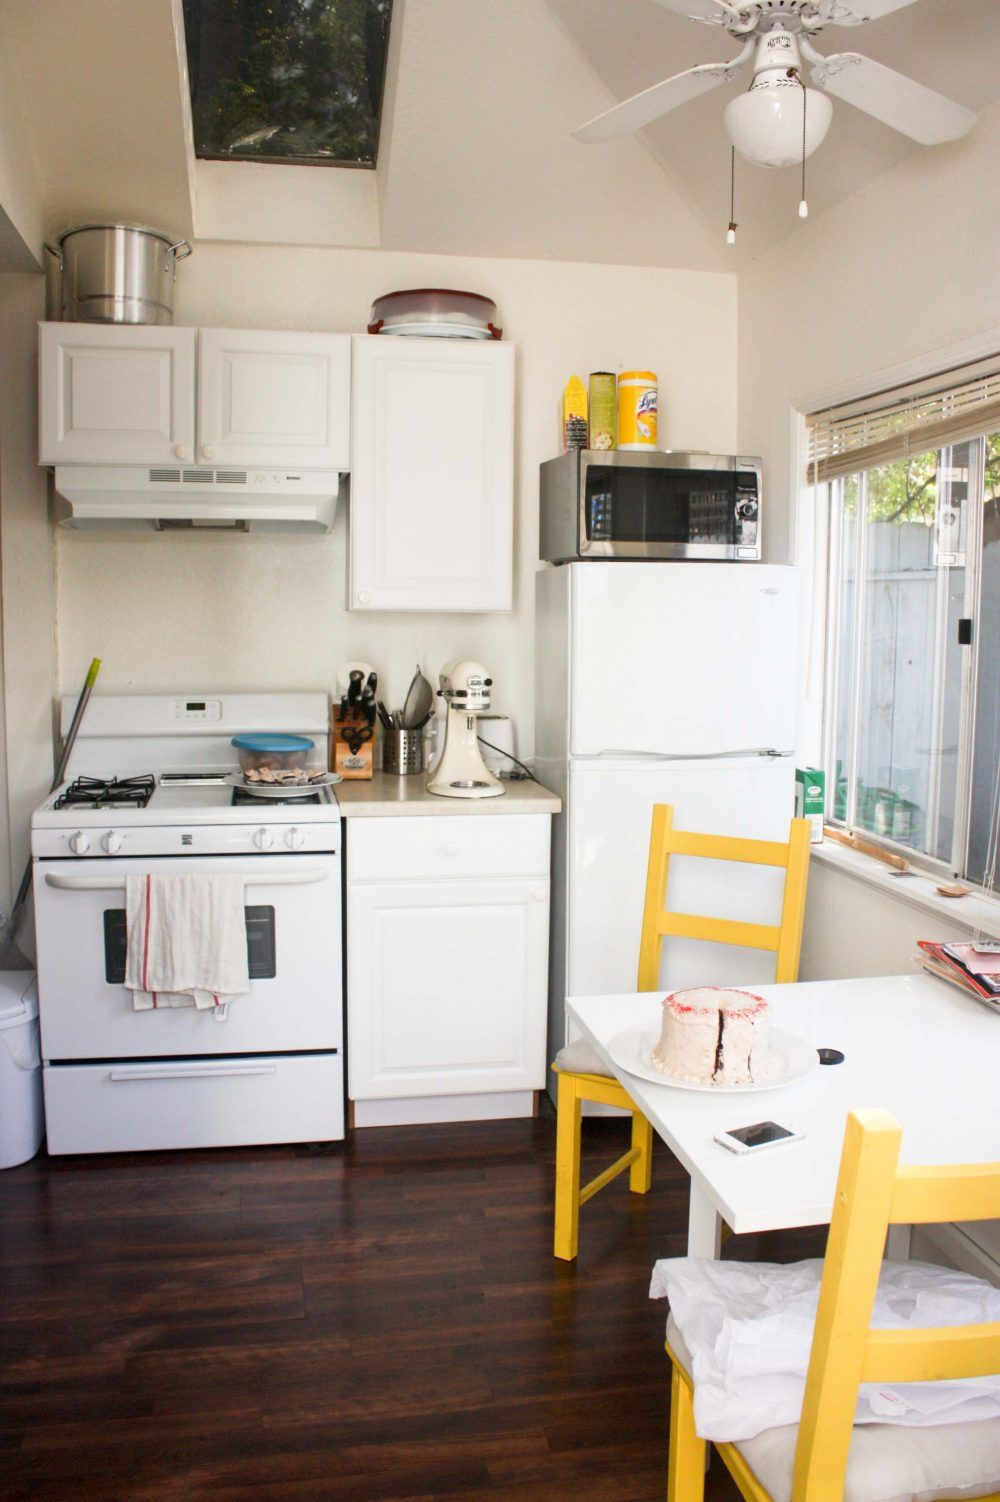 space saving furniture and sneaky storage tips for micro kitchens tiny kitchen design simple on kitchen organization for small spaces id=24698